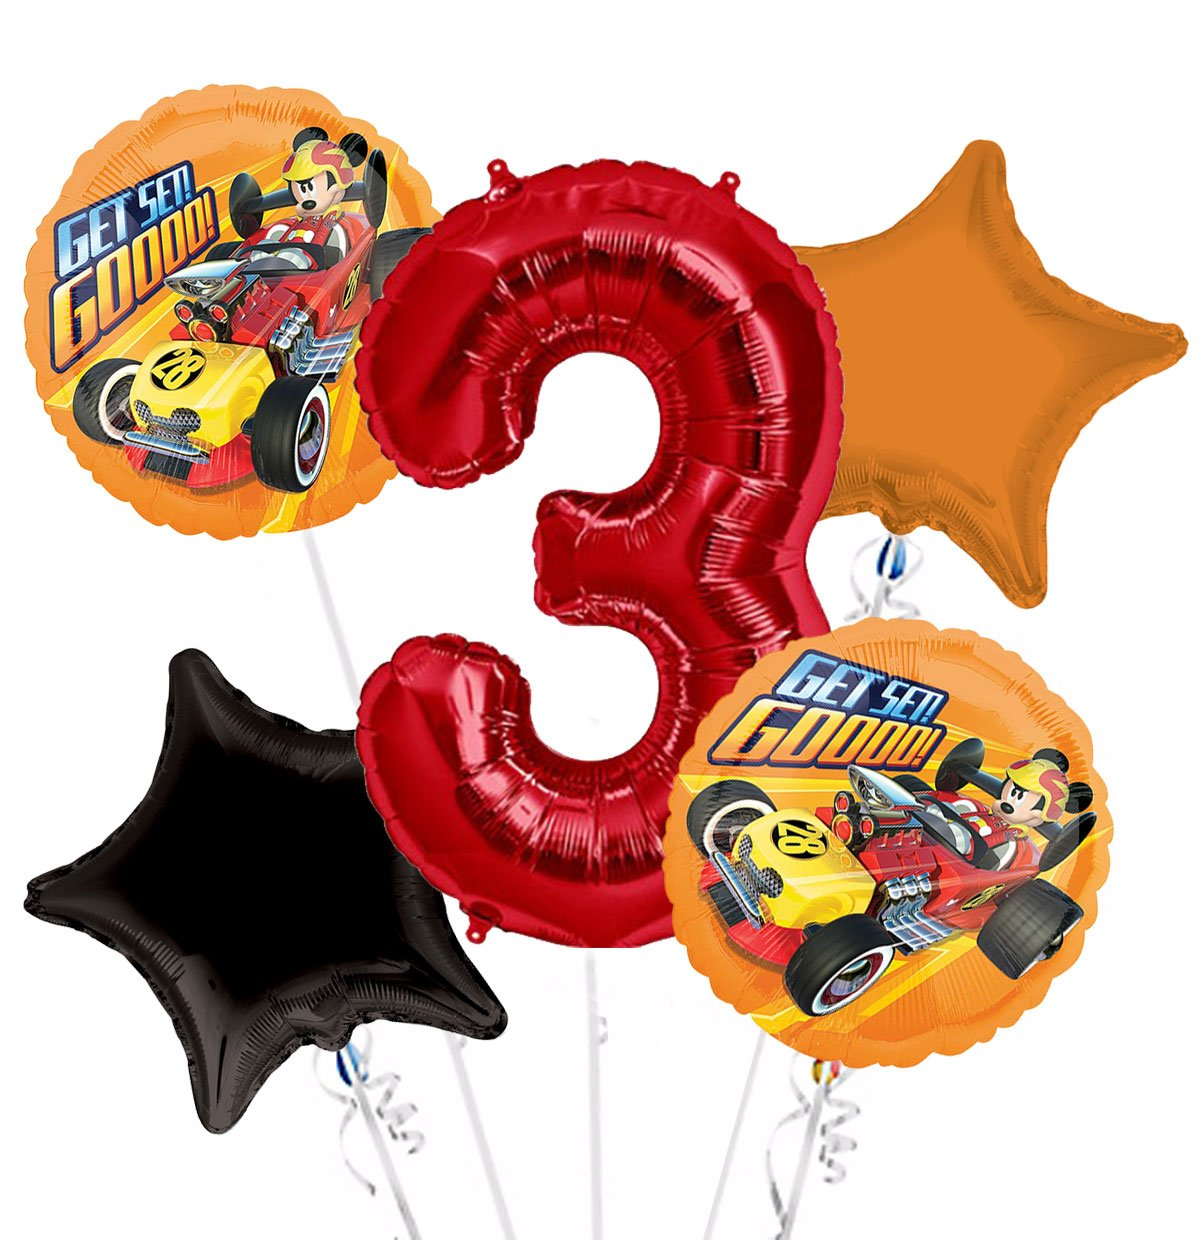 Amazon.com: Mickey Roadster Get Set. goooo. Ramo de globos ...